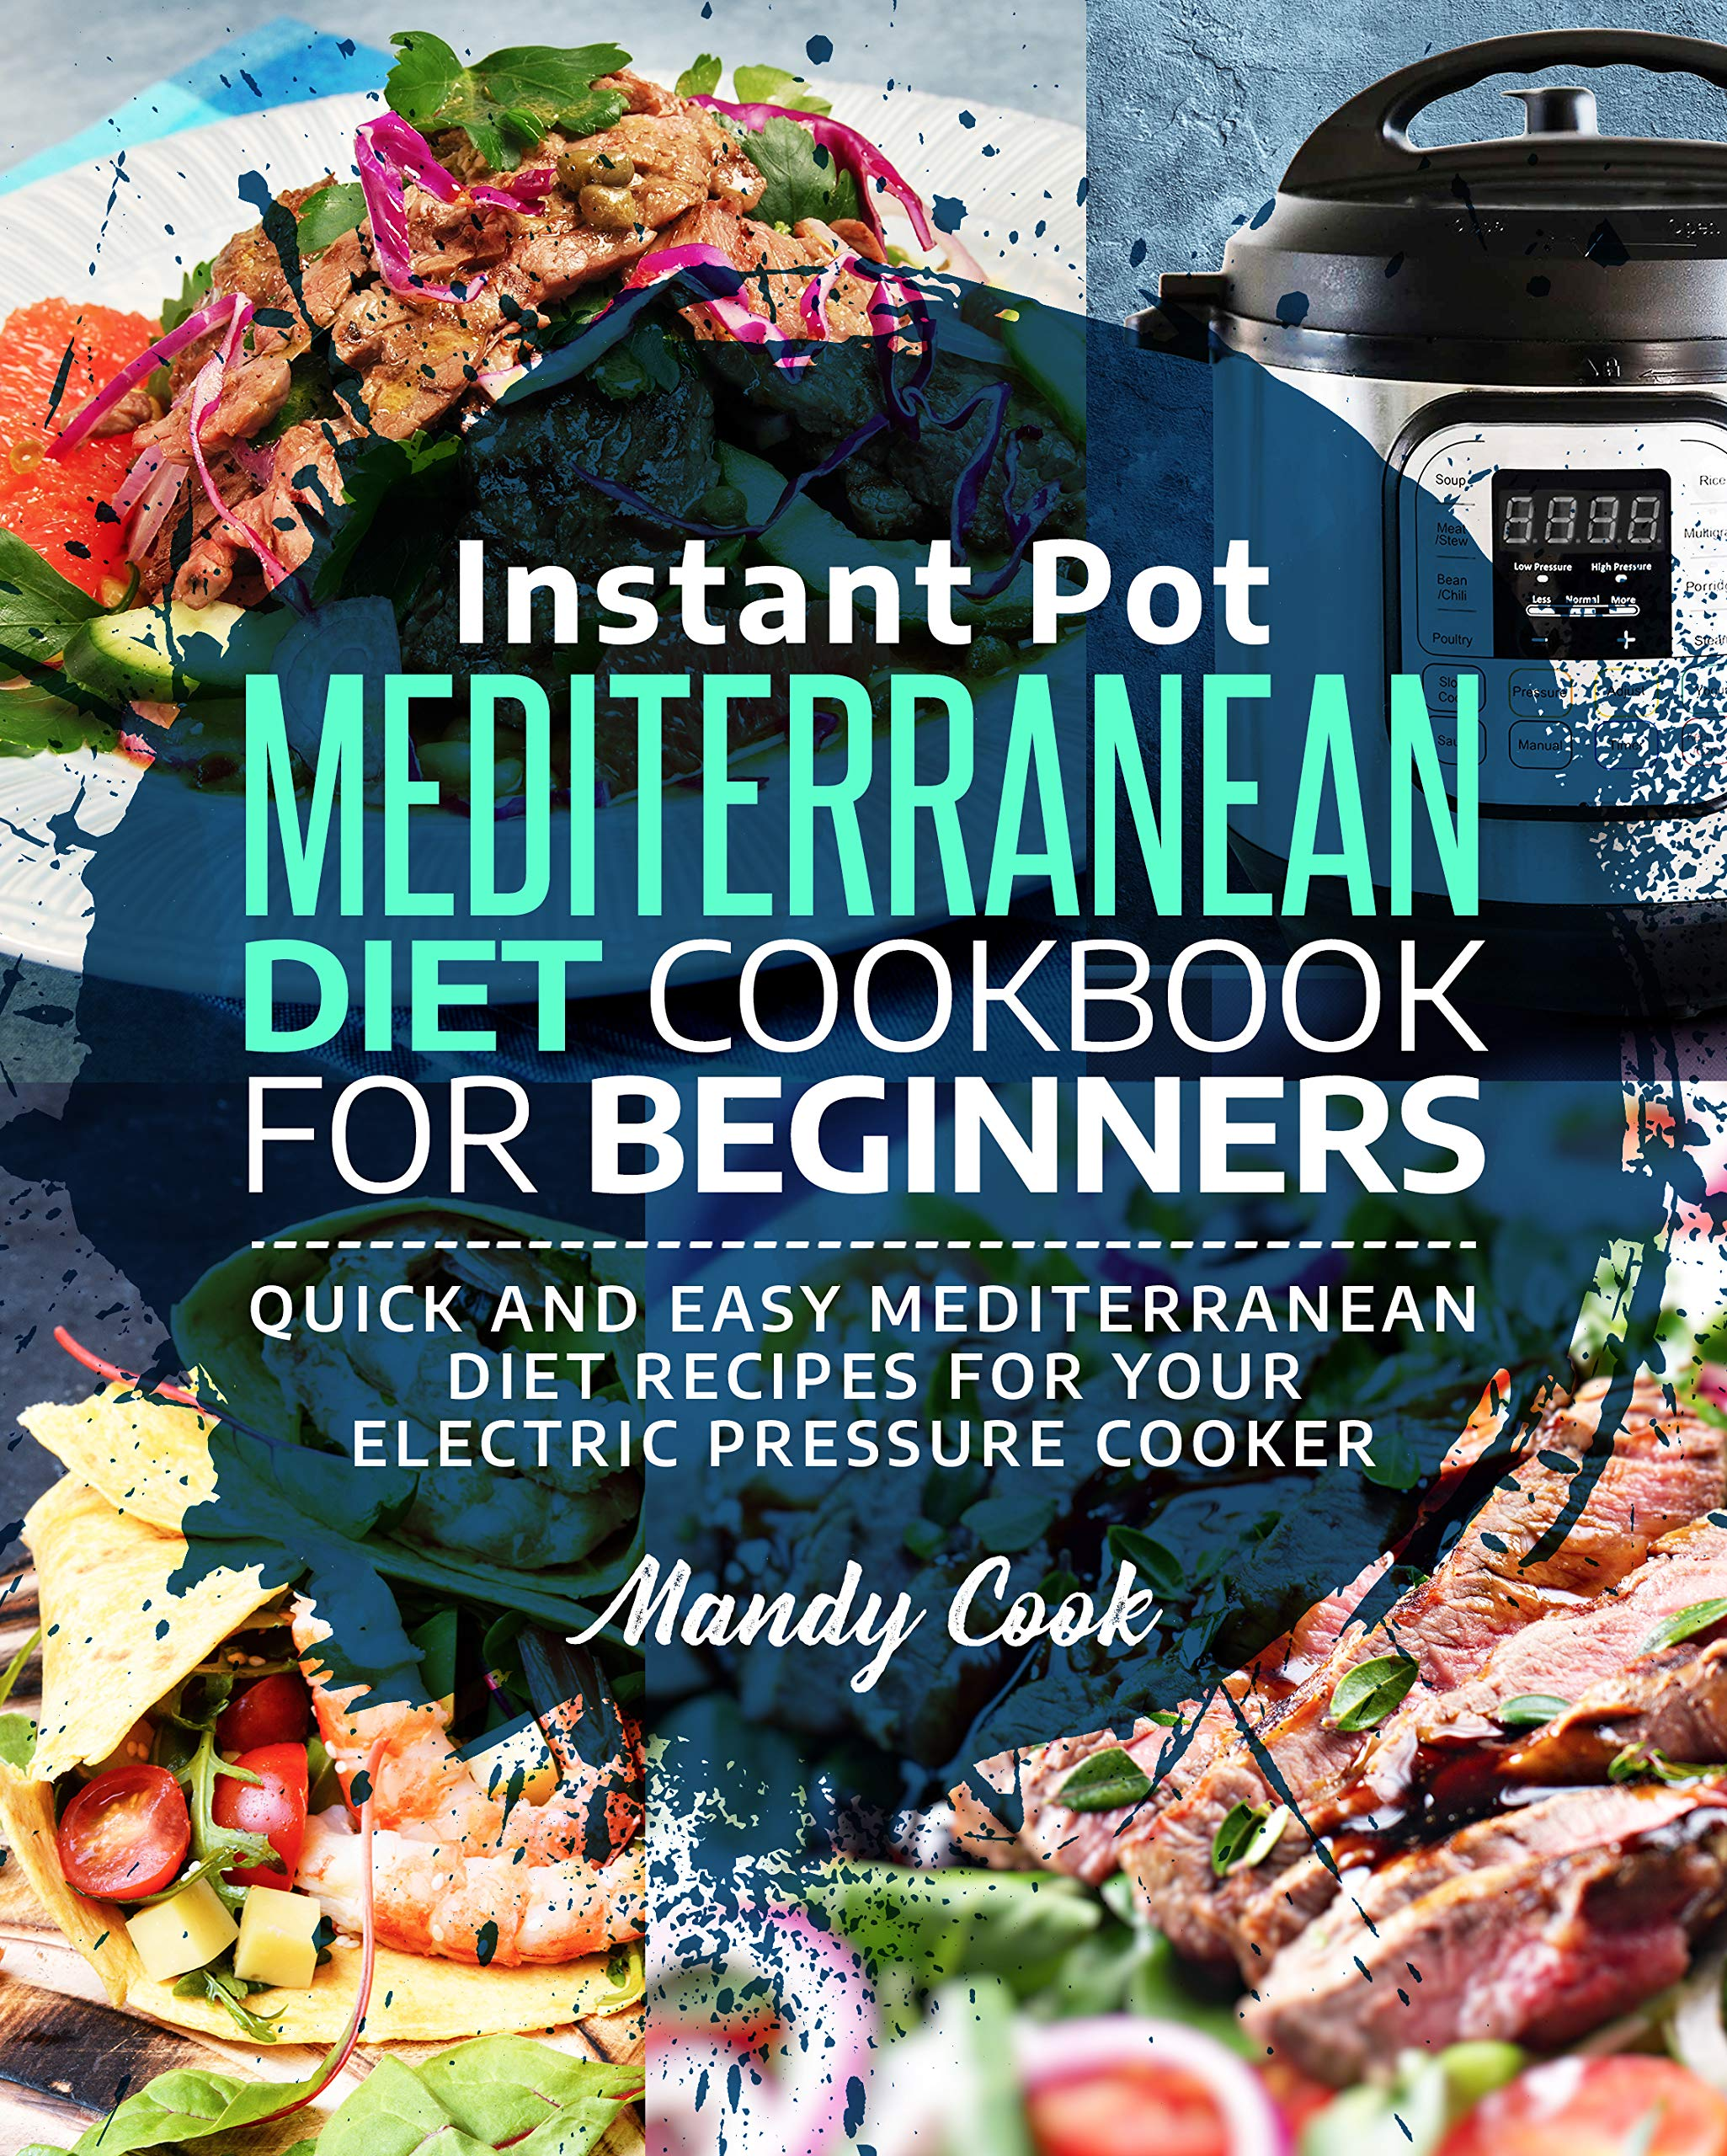 Instant Pot Mediterranean Diet Cookbook For Beginners  Quick And Easy Mediterranean Diet Recipes For Your Electric Pressure Cooker  English Edition